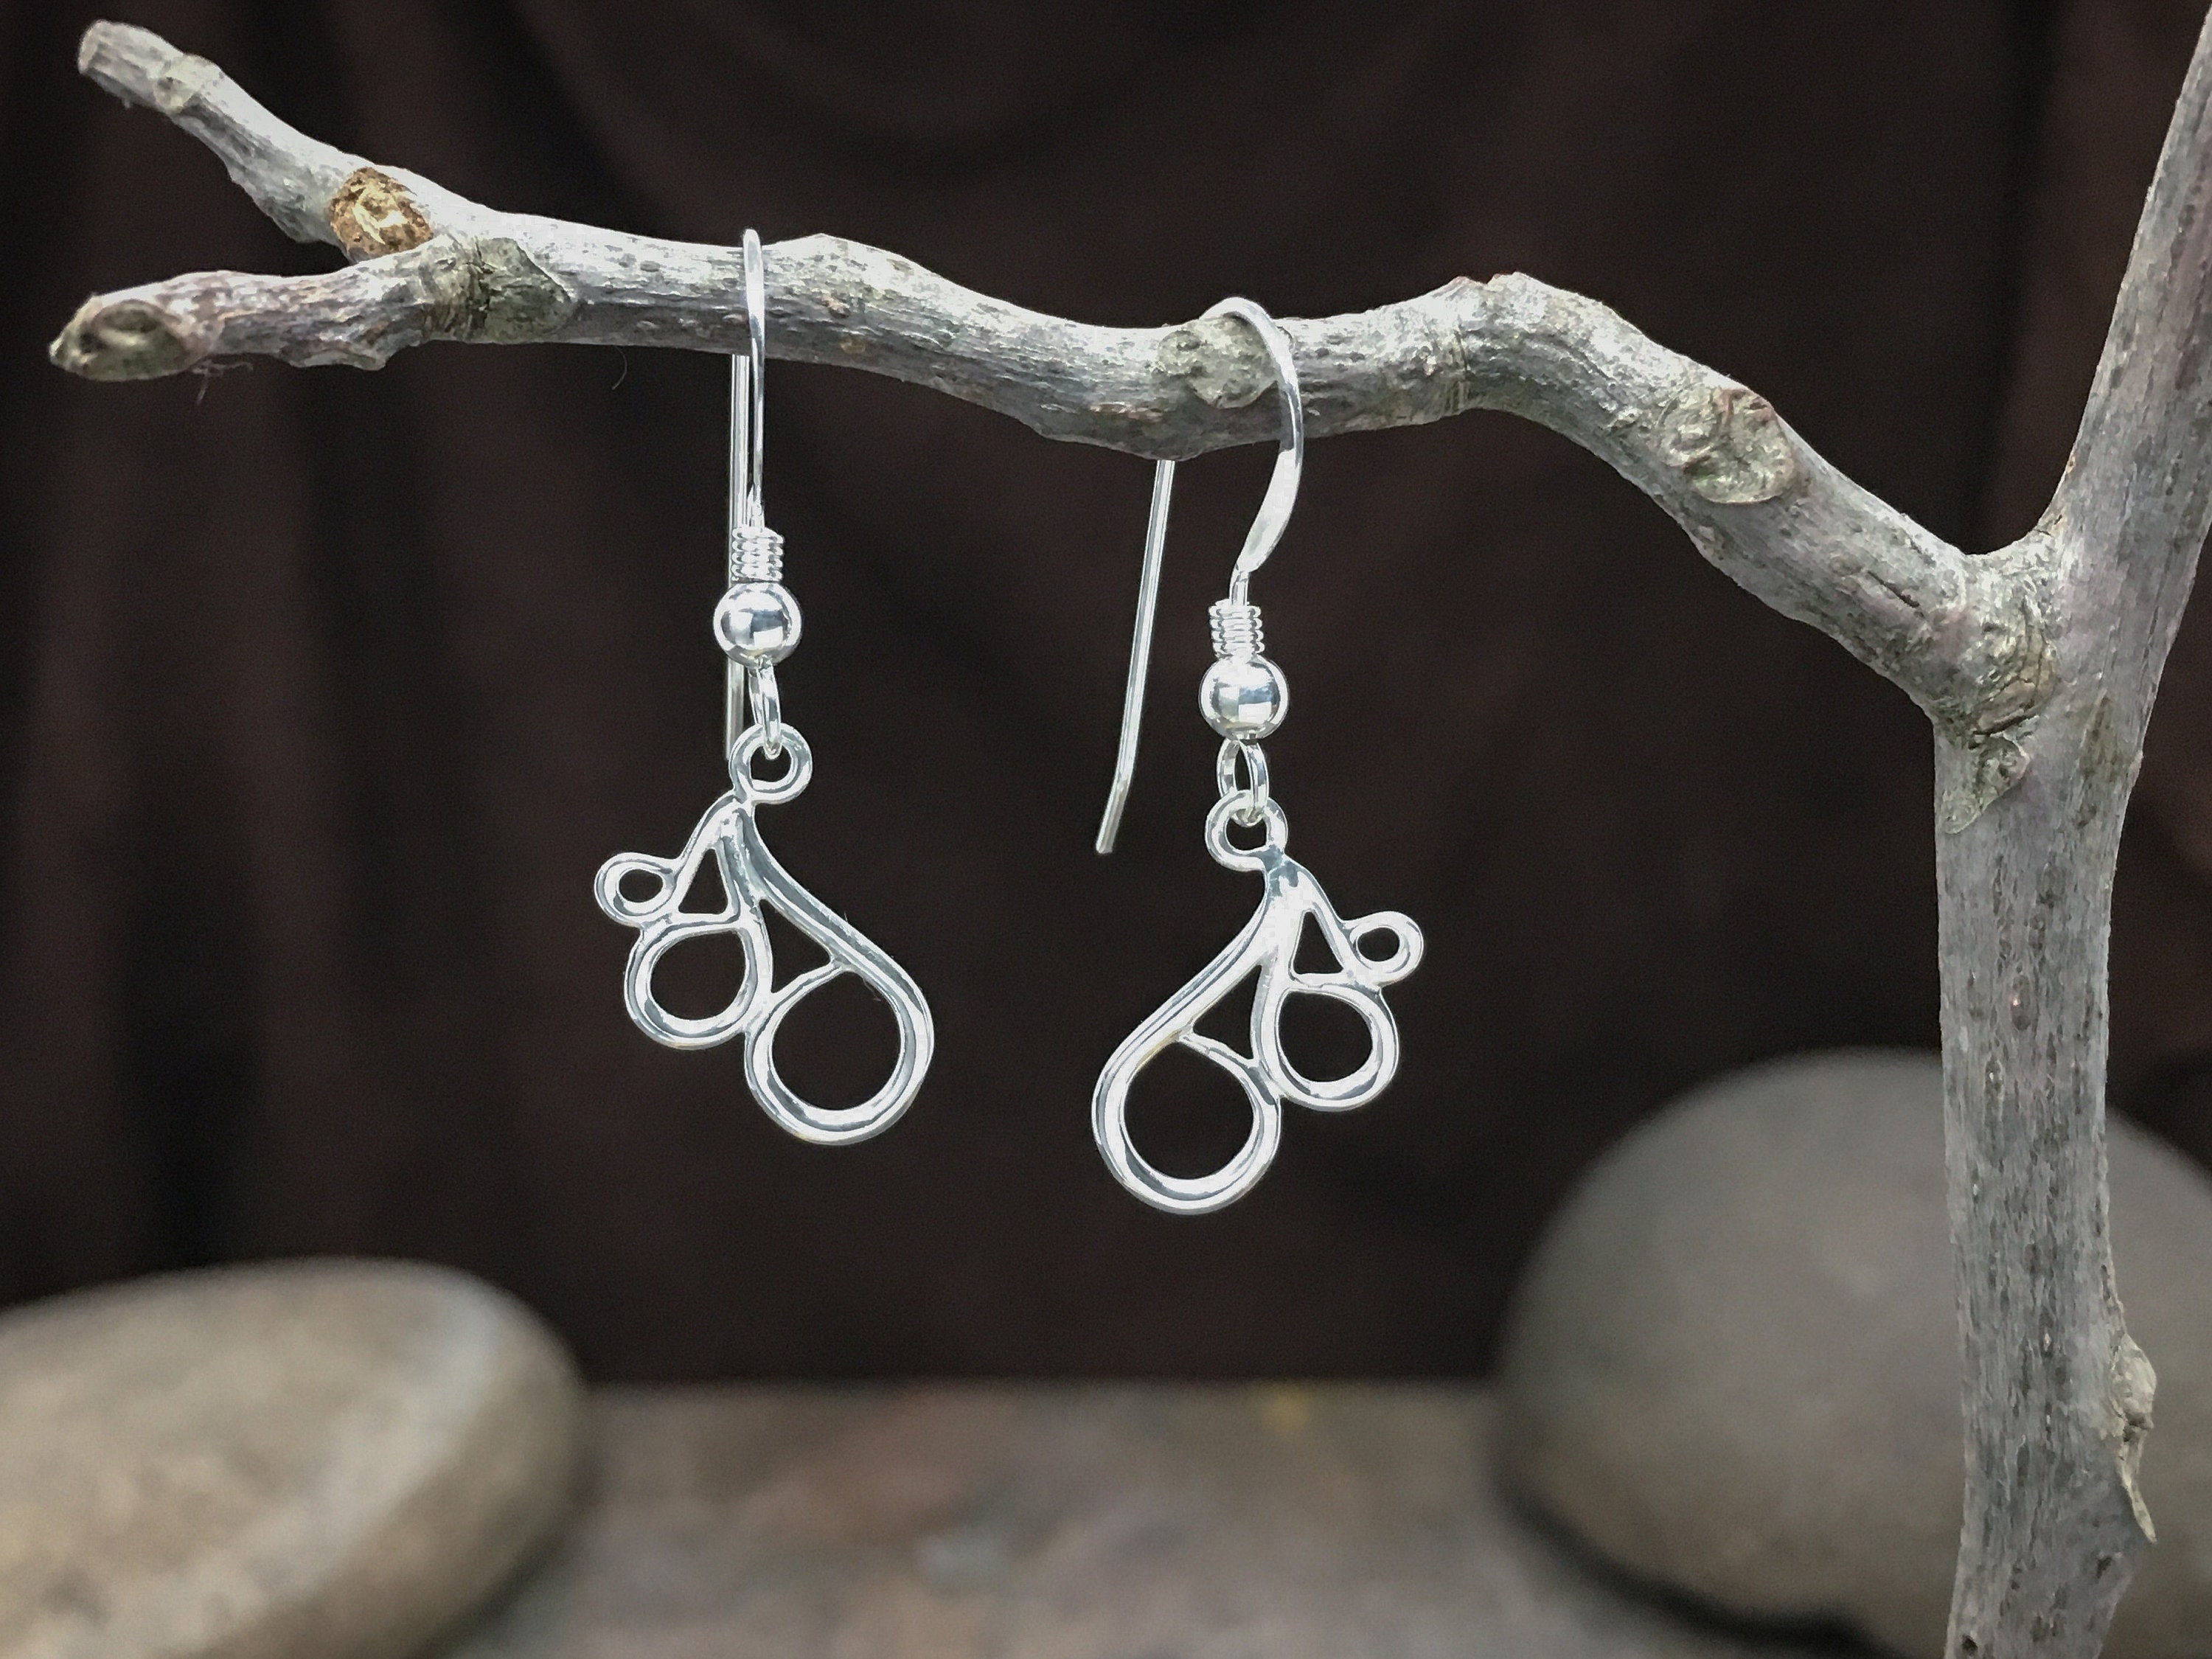 "Fancy Earrings ""small"" in solid Sterling Silver - Fine Jewelry for anniversary gifts, birthday gifts, wife gifts or a nice thank you gift!"